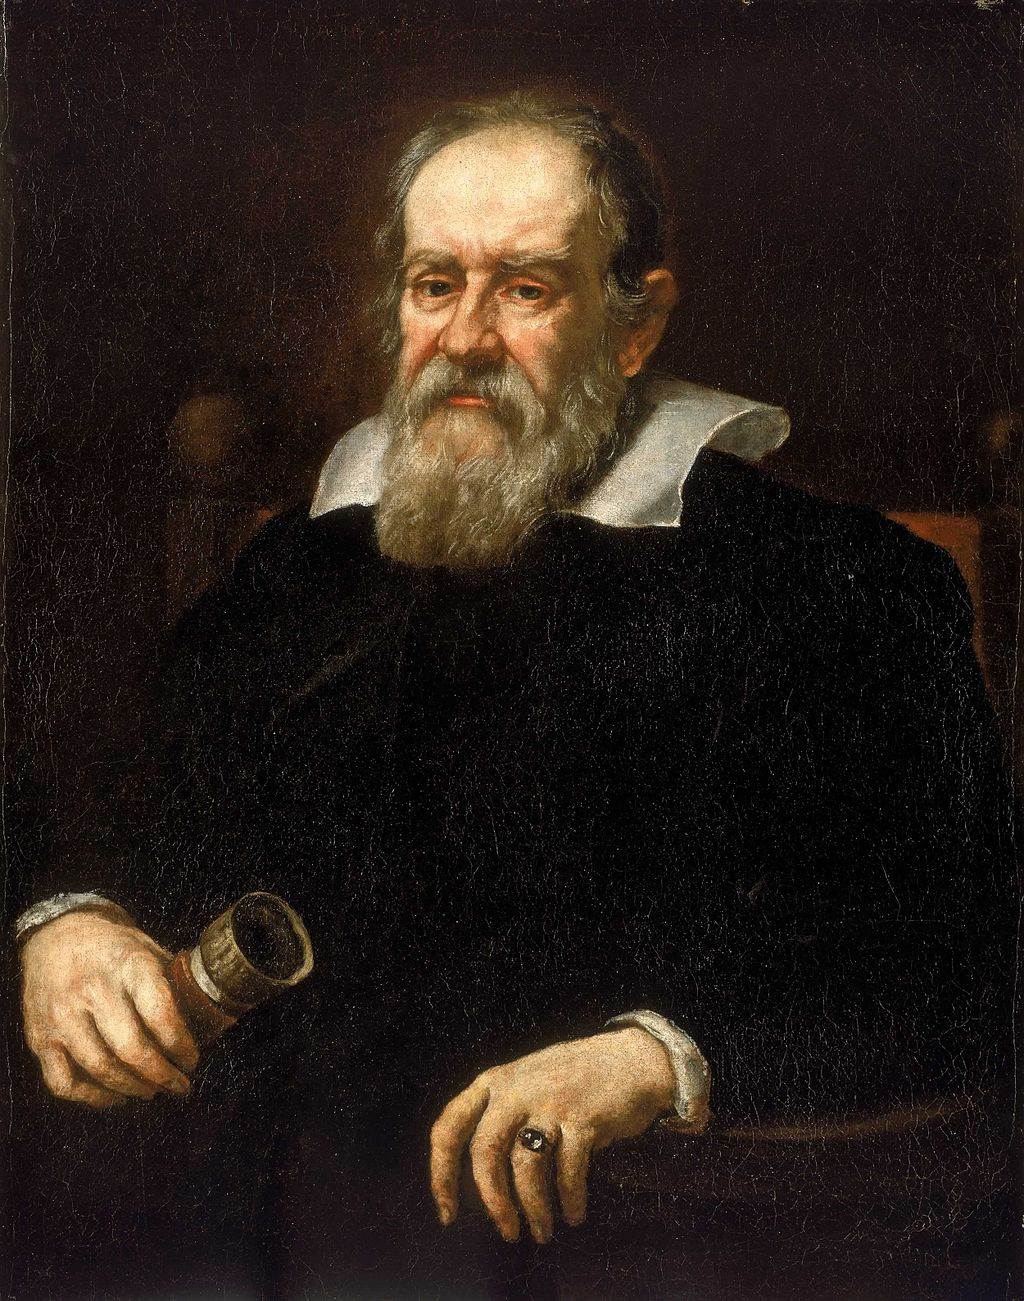 Galileo's fingers, before their removal. Justus Sustermans [Public domain or Public domain], via Wikimedia Commons